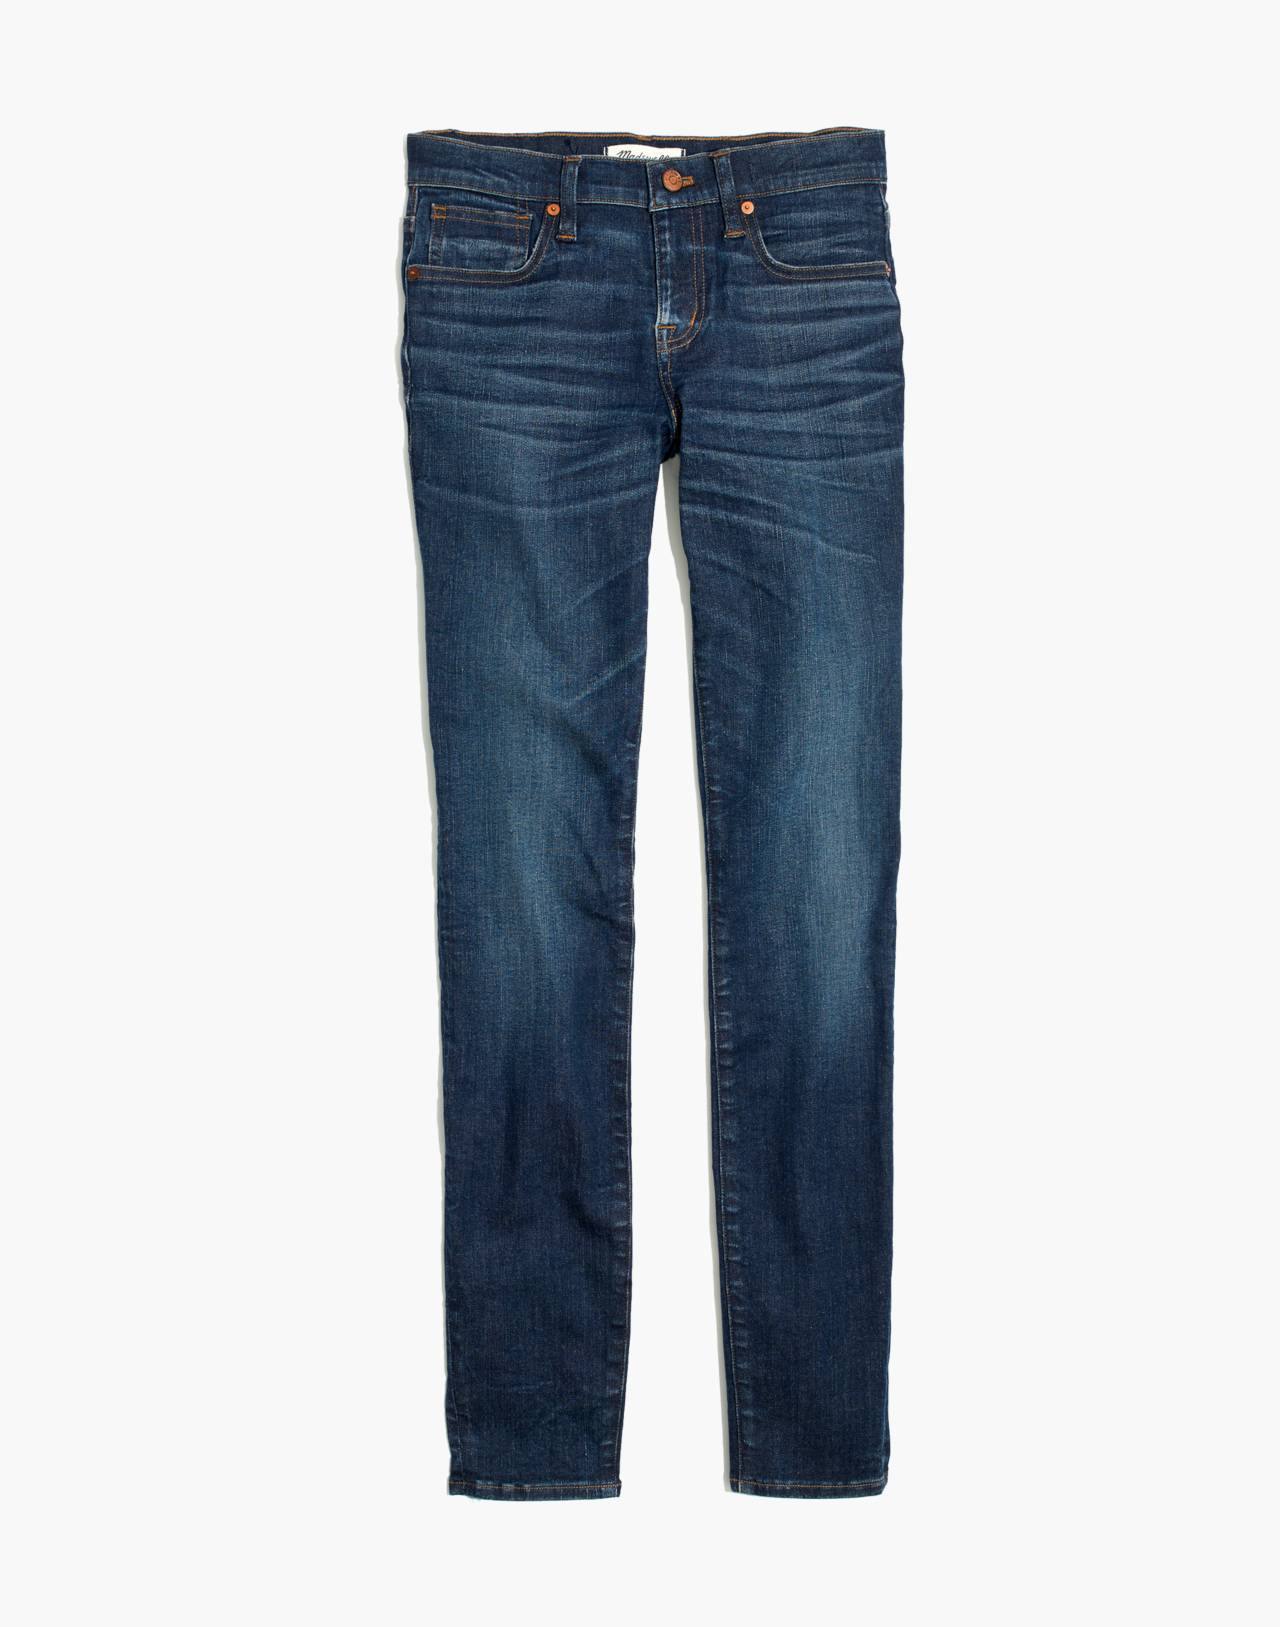 "Petite 8"" Skinny Jeans in Ames Wash in ames wash image 4"